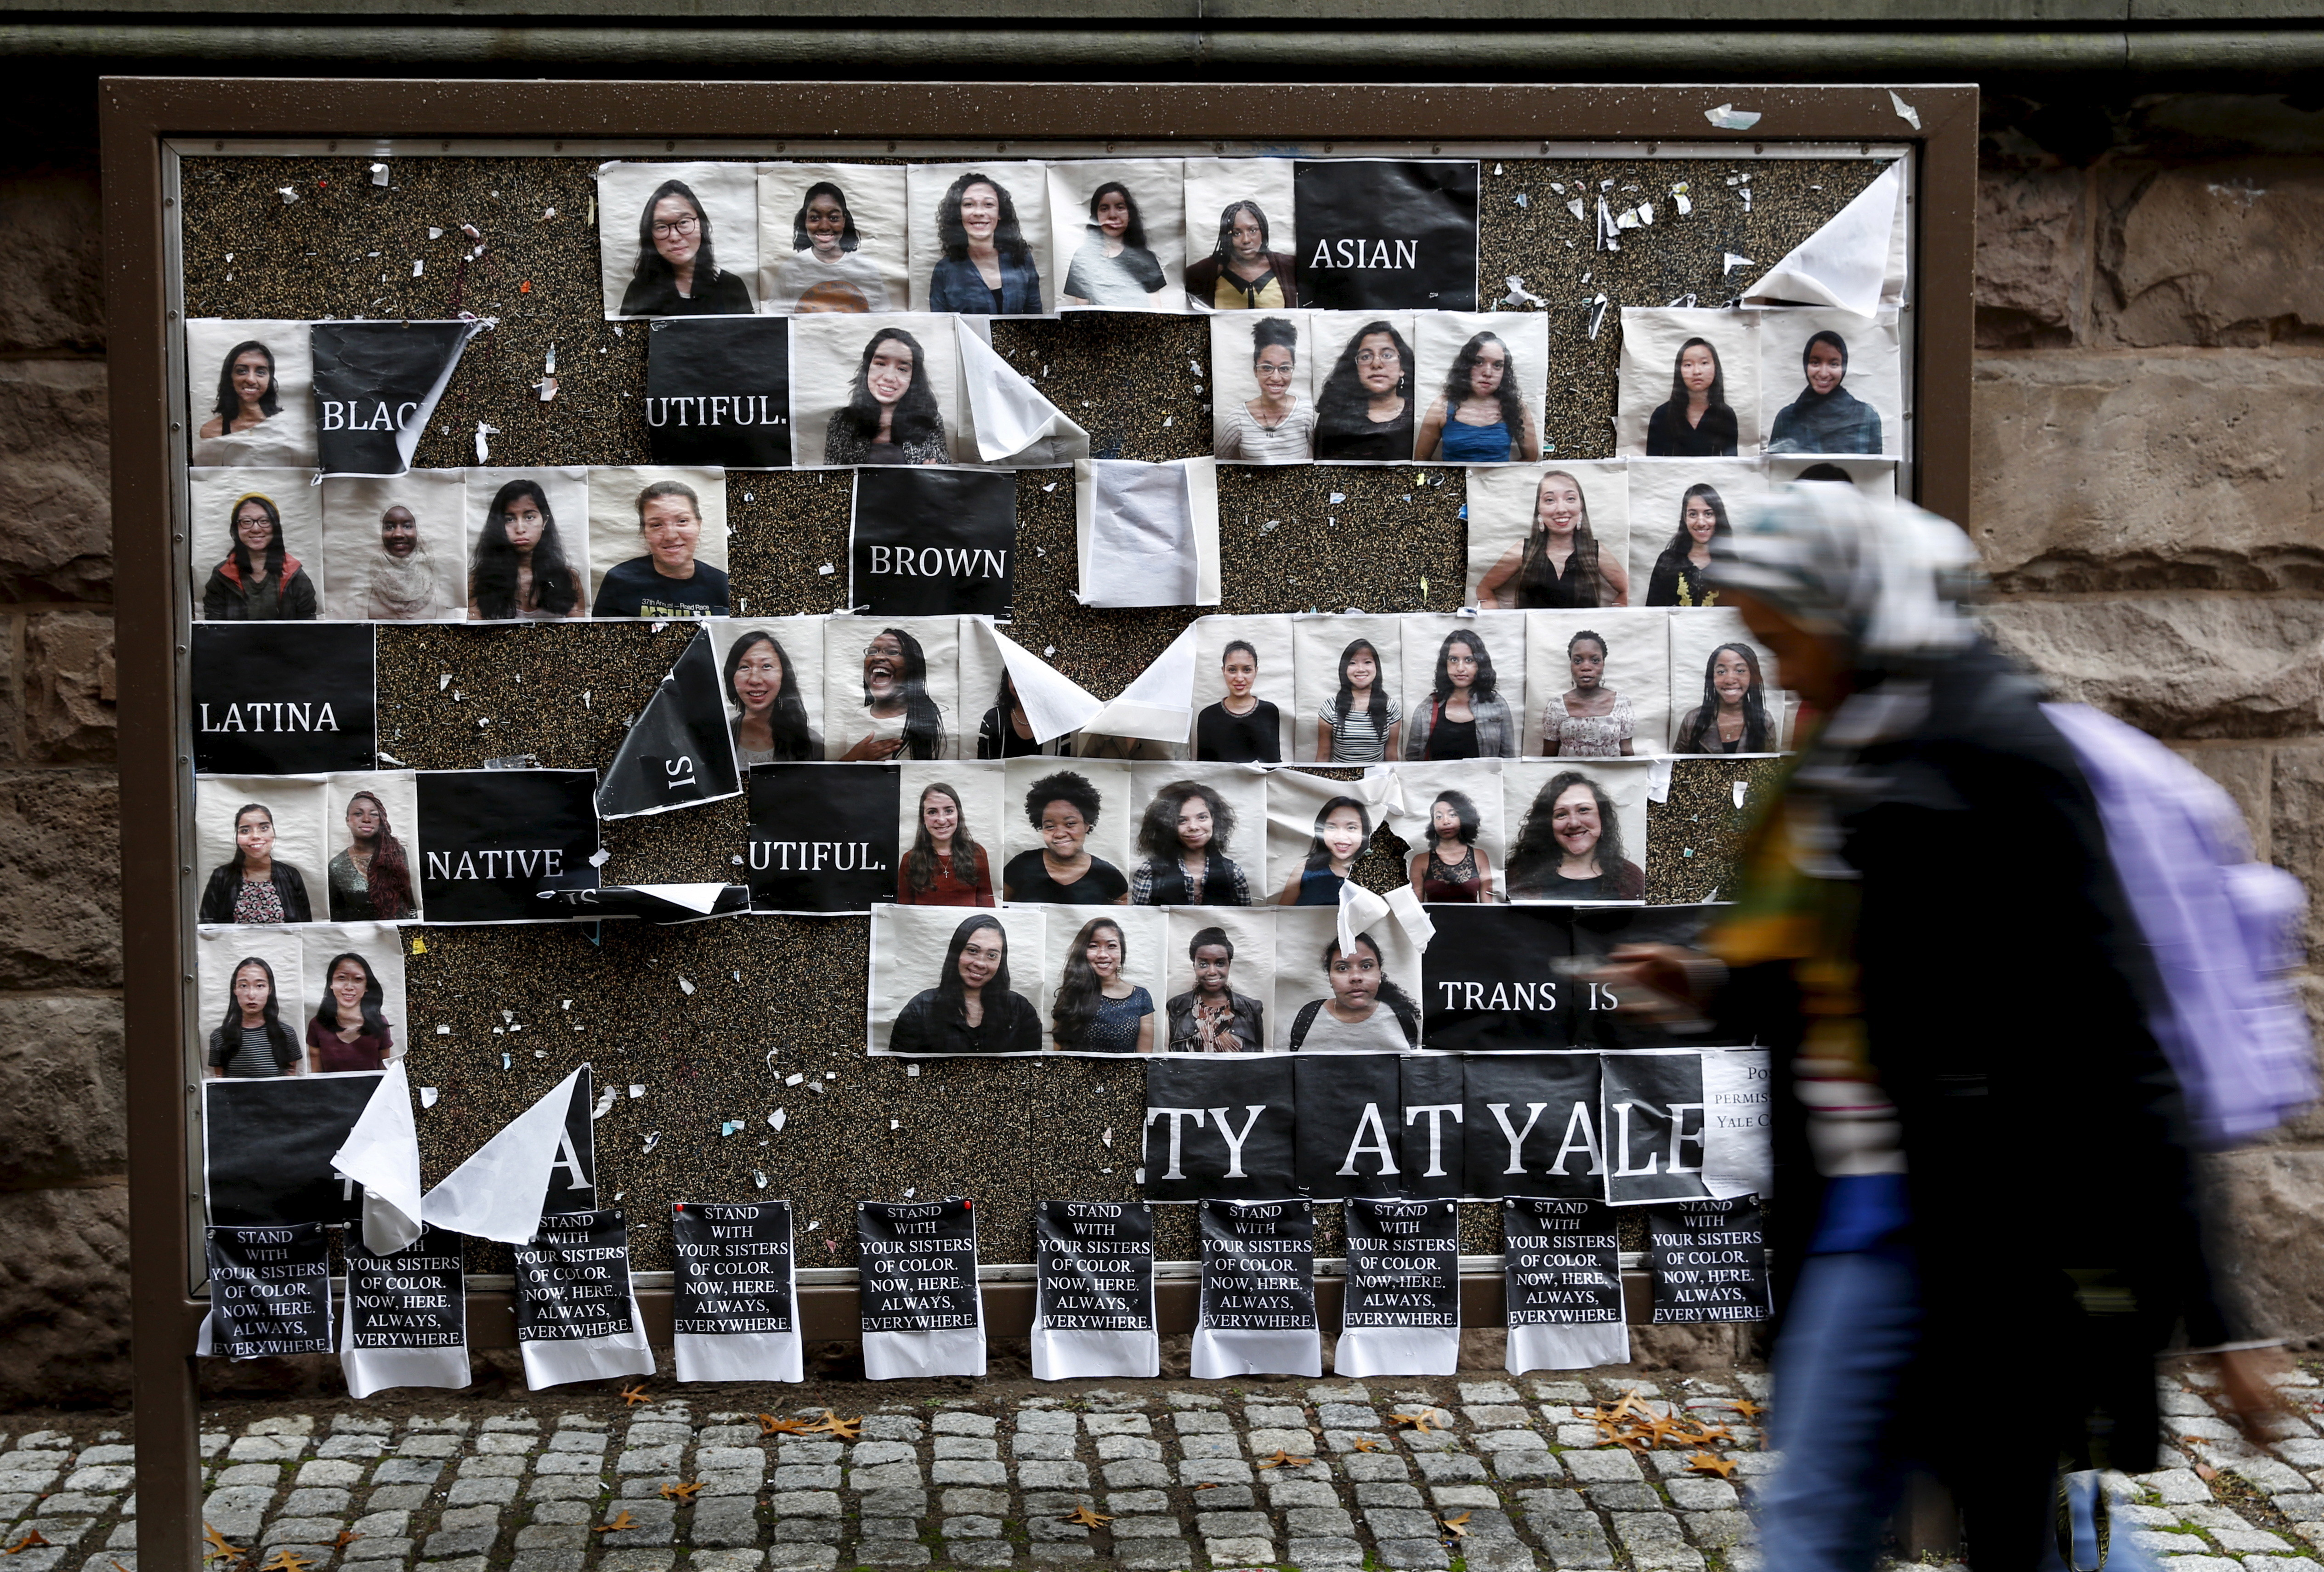 A student walks by a college noticeboard on campus at Yale University in New Haven, Connecticut November 12, 2015. More than 1,000 students, professors and staff at Yale University gathered on Wednesday to discuss race and diversity at the elite Ivy League school, amid a wave of demonstrations at U.S. colleges over the treatment of minority students. REUTERS/Shannon Stapleton - GF20000057014